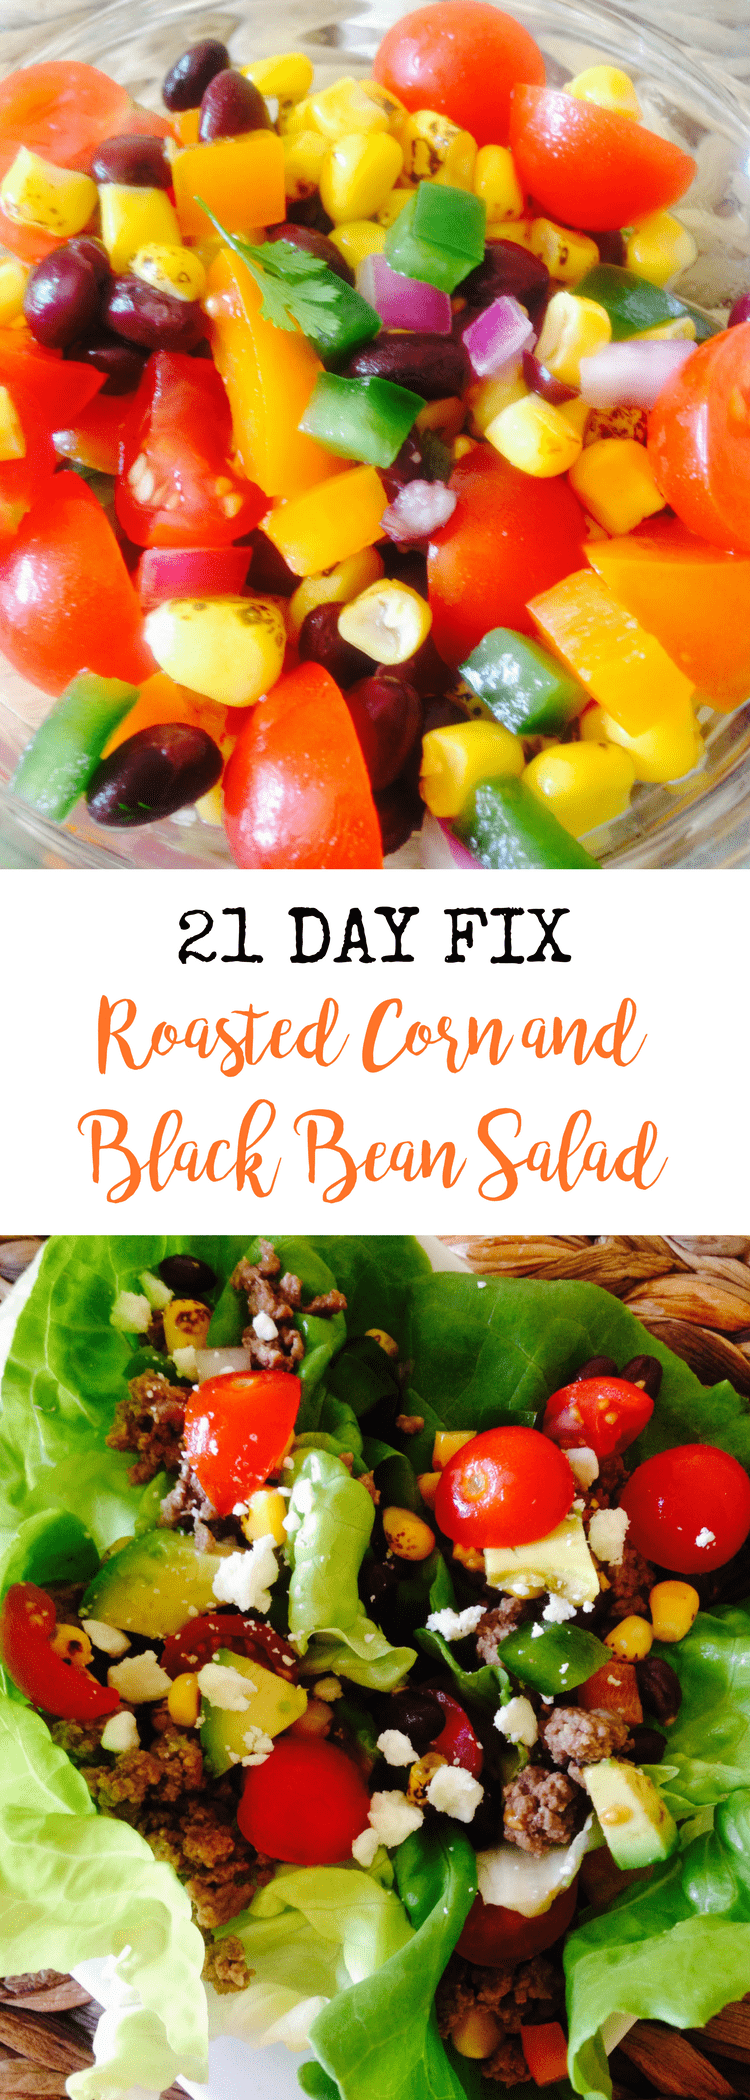 21 Day Fix Roasted Corn and Black Bean Salad | Confessions of a Fit Foodie